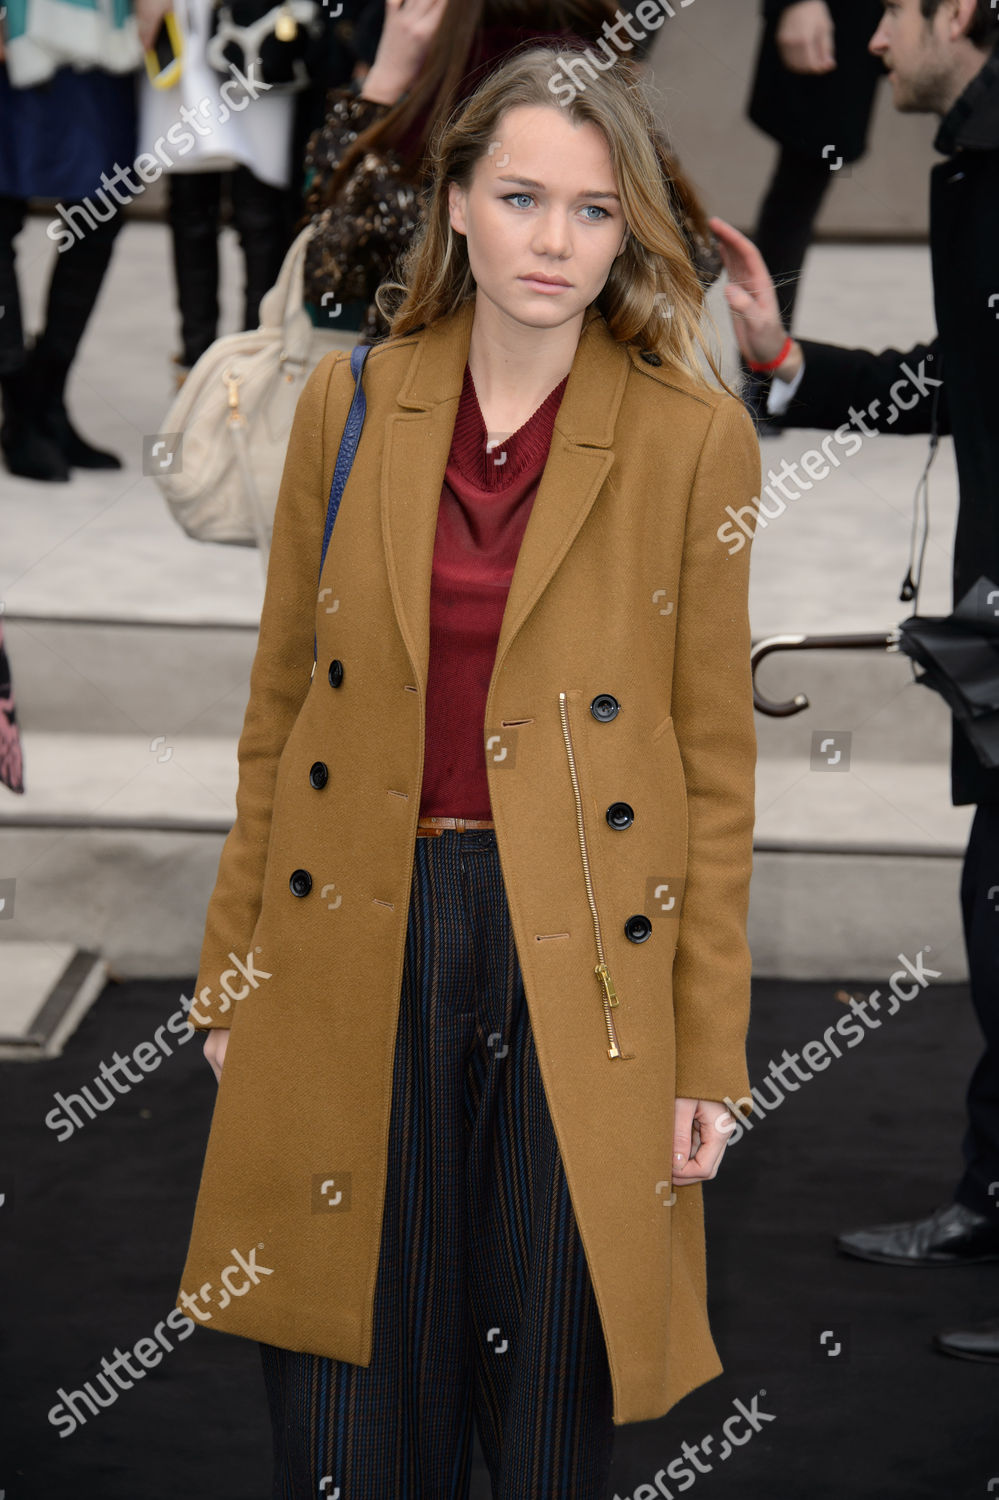 f656287c03d4 Imogen Waterhouse poses photographers upon arrival Burberry ...